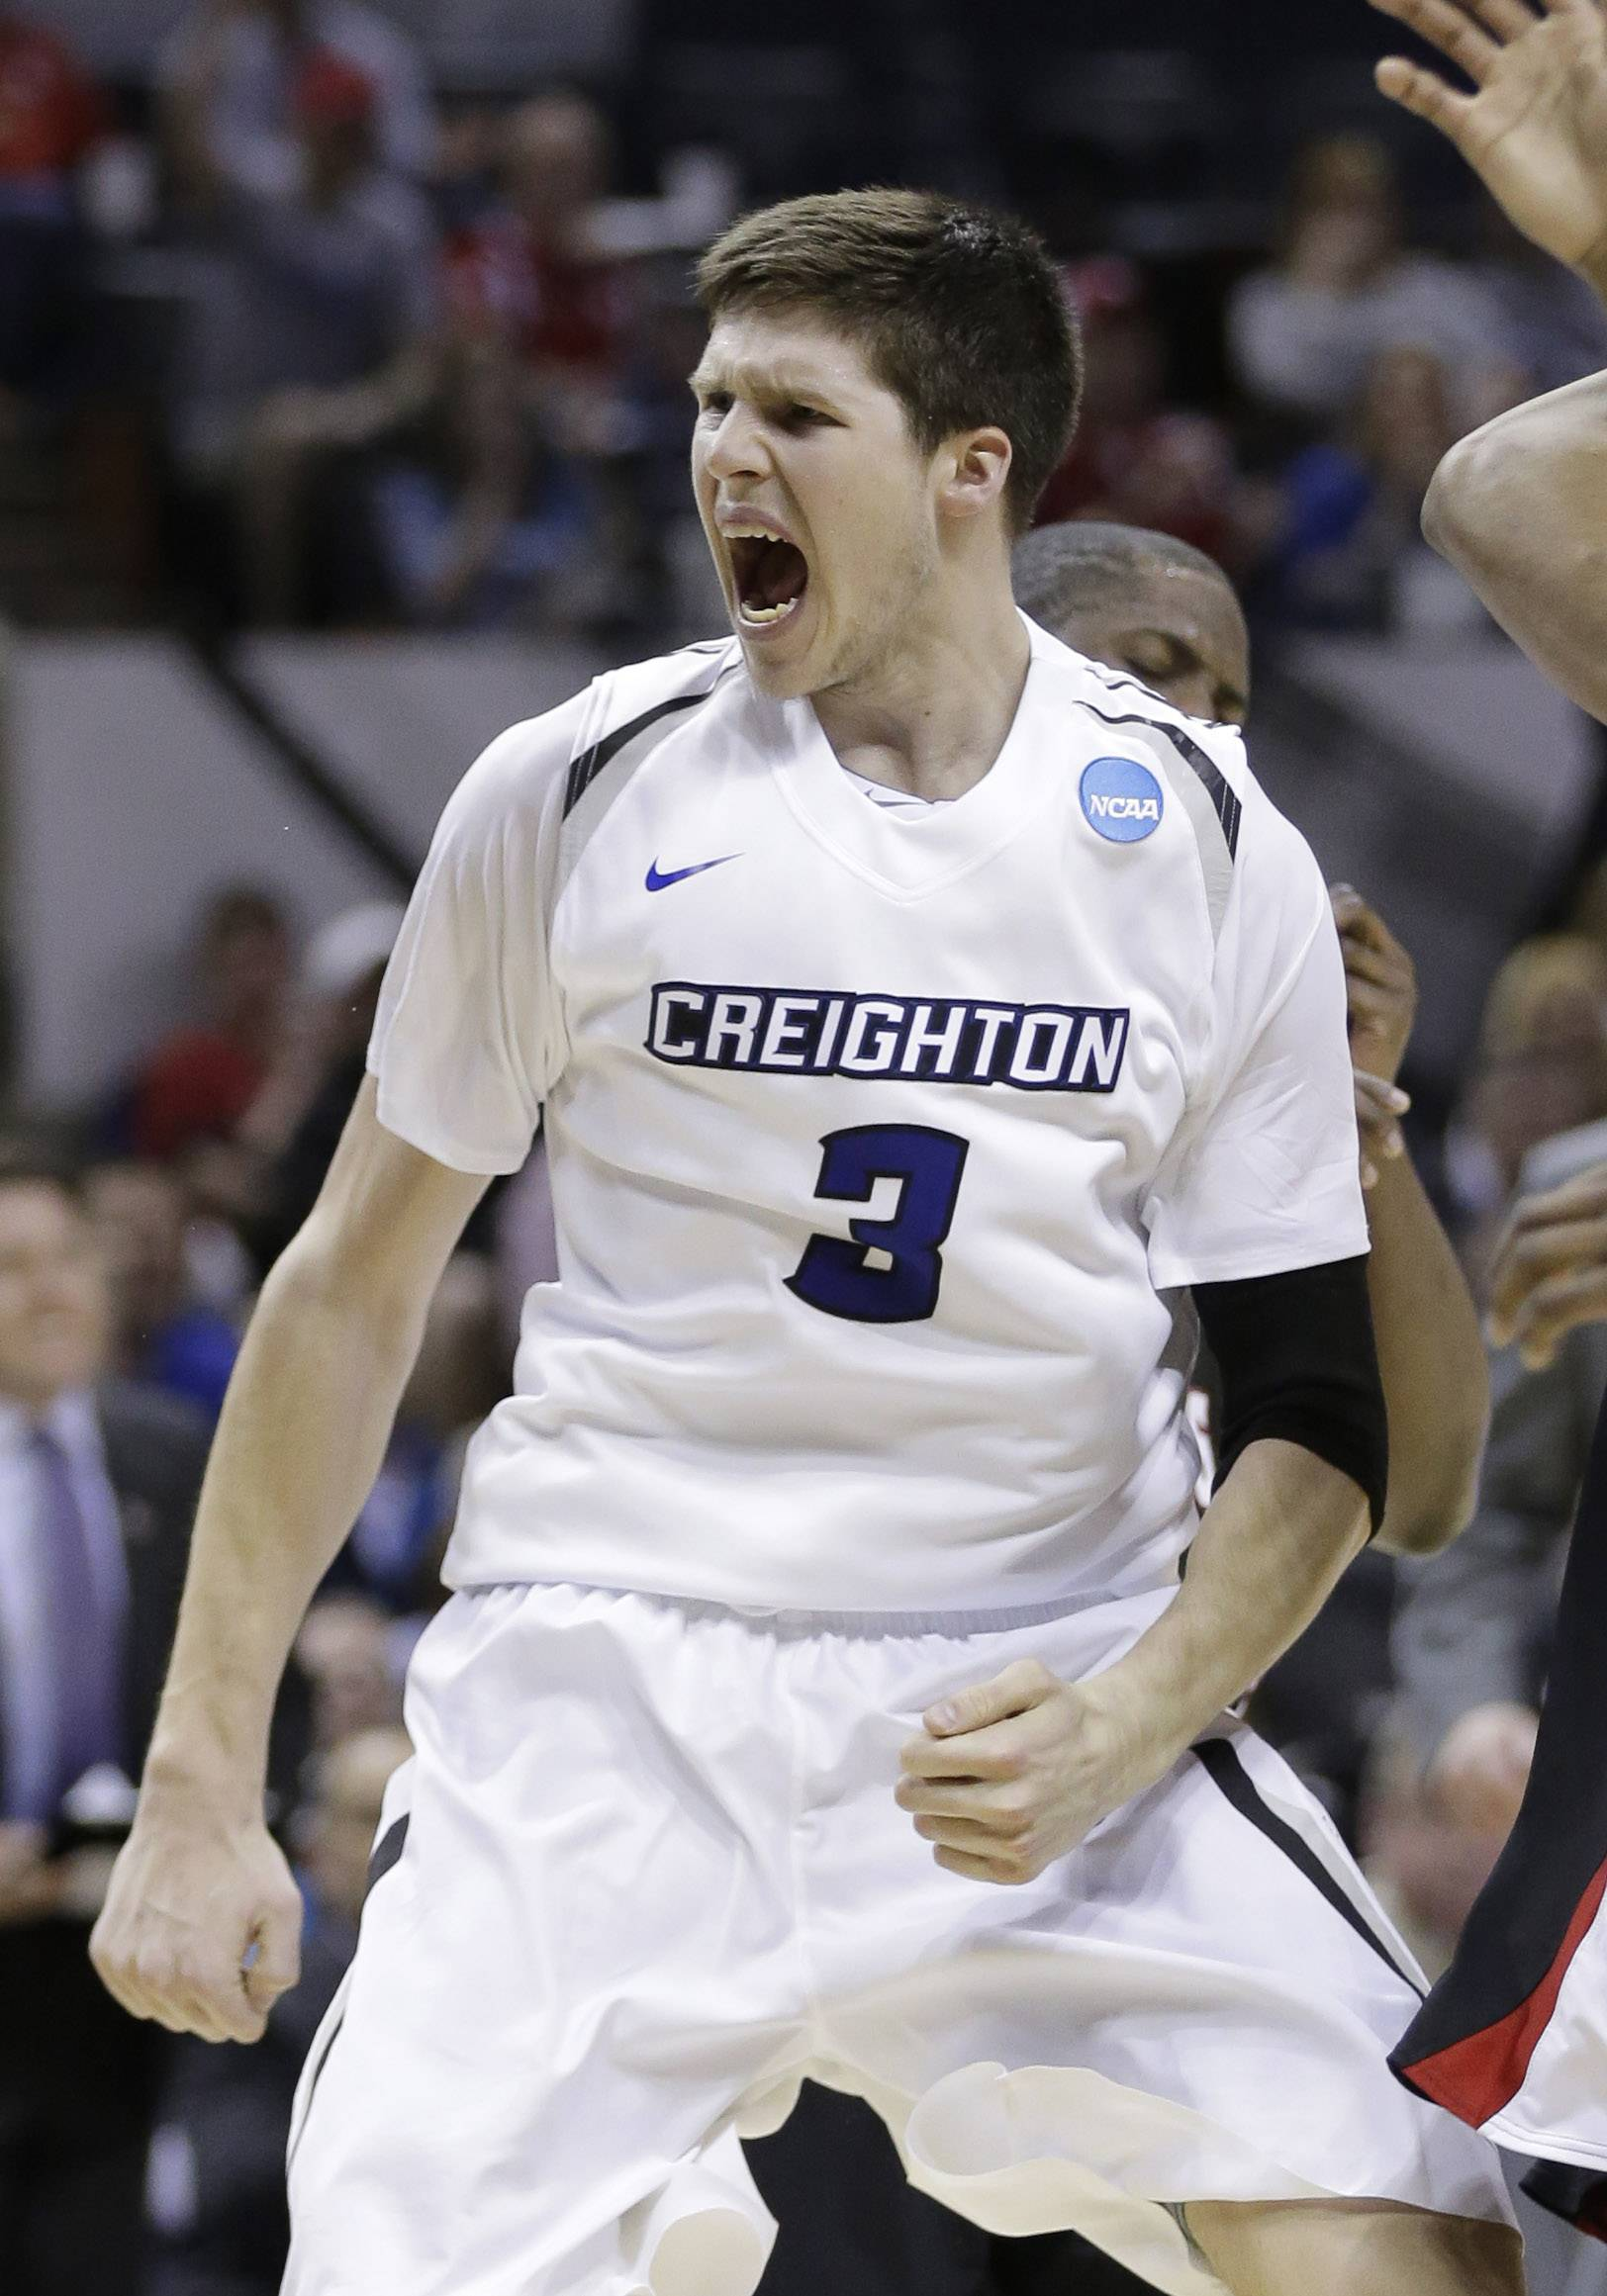 Creighton's Doug McDermott (3) celebrates a score against Louisiana-Lafayette during the second half of a second-round game in the NCAA college basketball tournament Friday, March 21, 2014, in San Antonio. Creighton won 76-66. (AP Photo/Eric Gay)